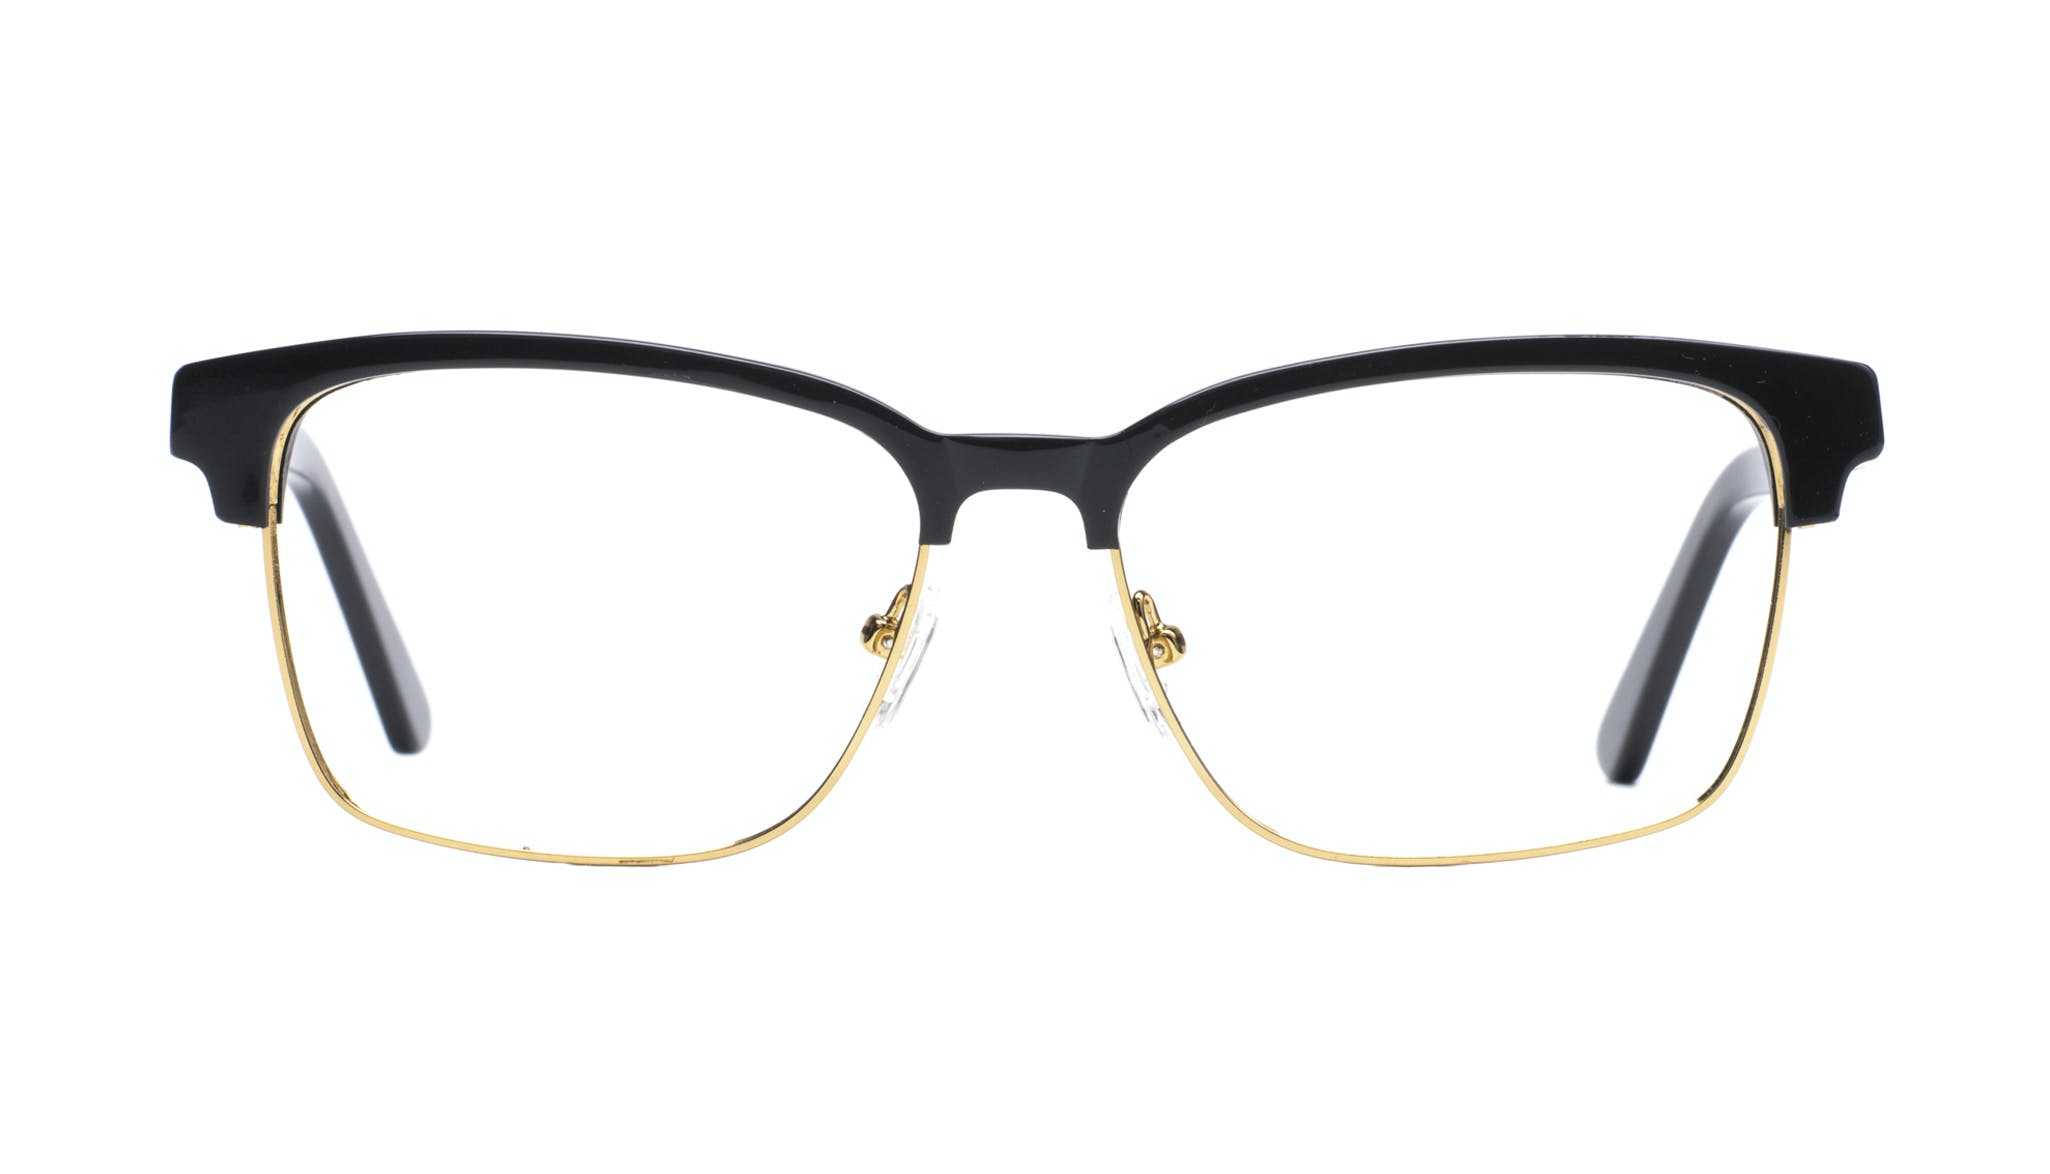 Affordable Fashion Glasses Rectangle Square Eyeglasses Men Gallery Black Front